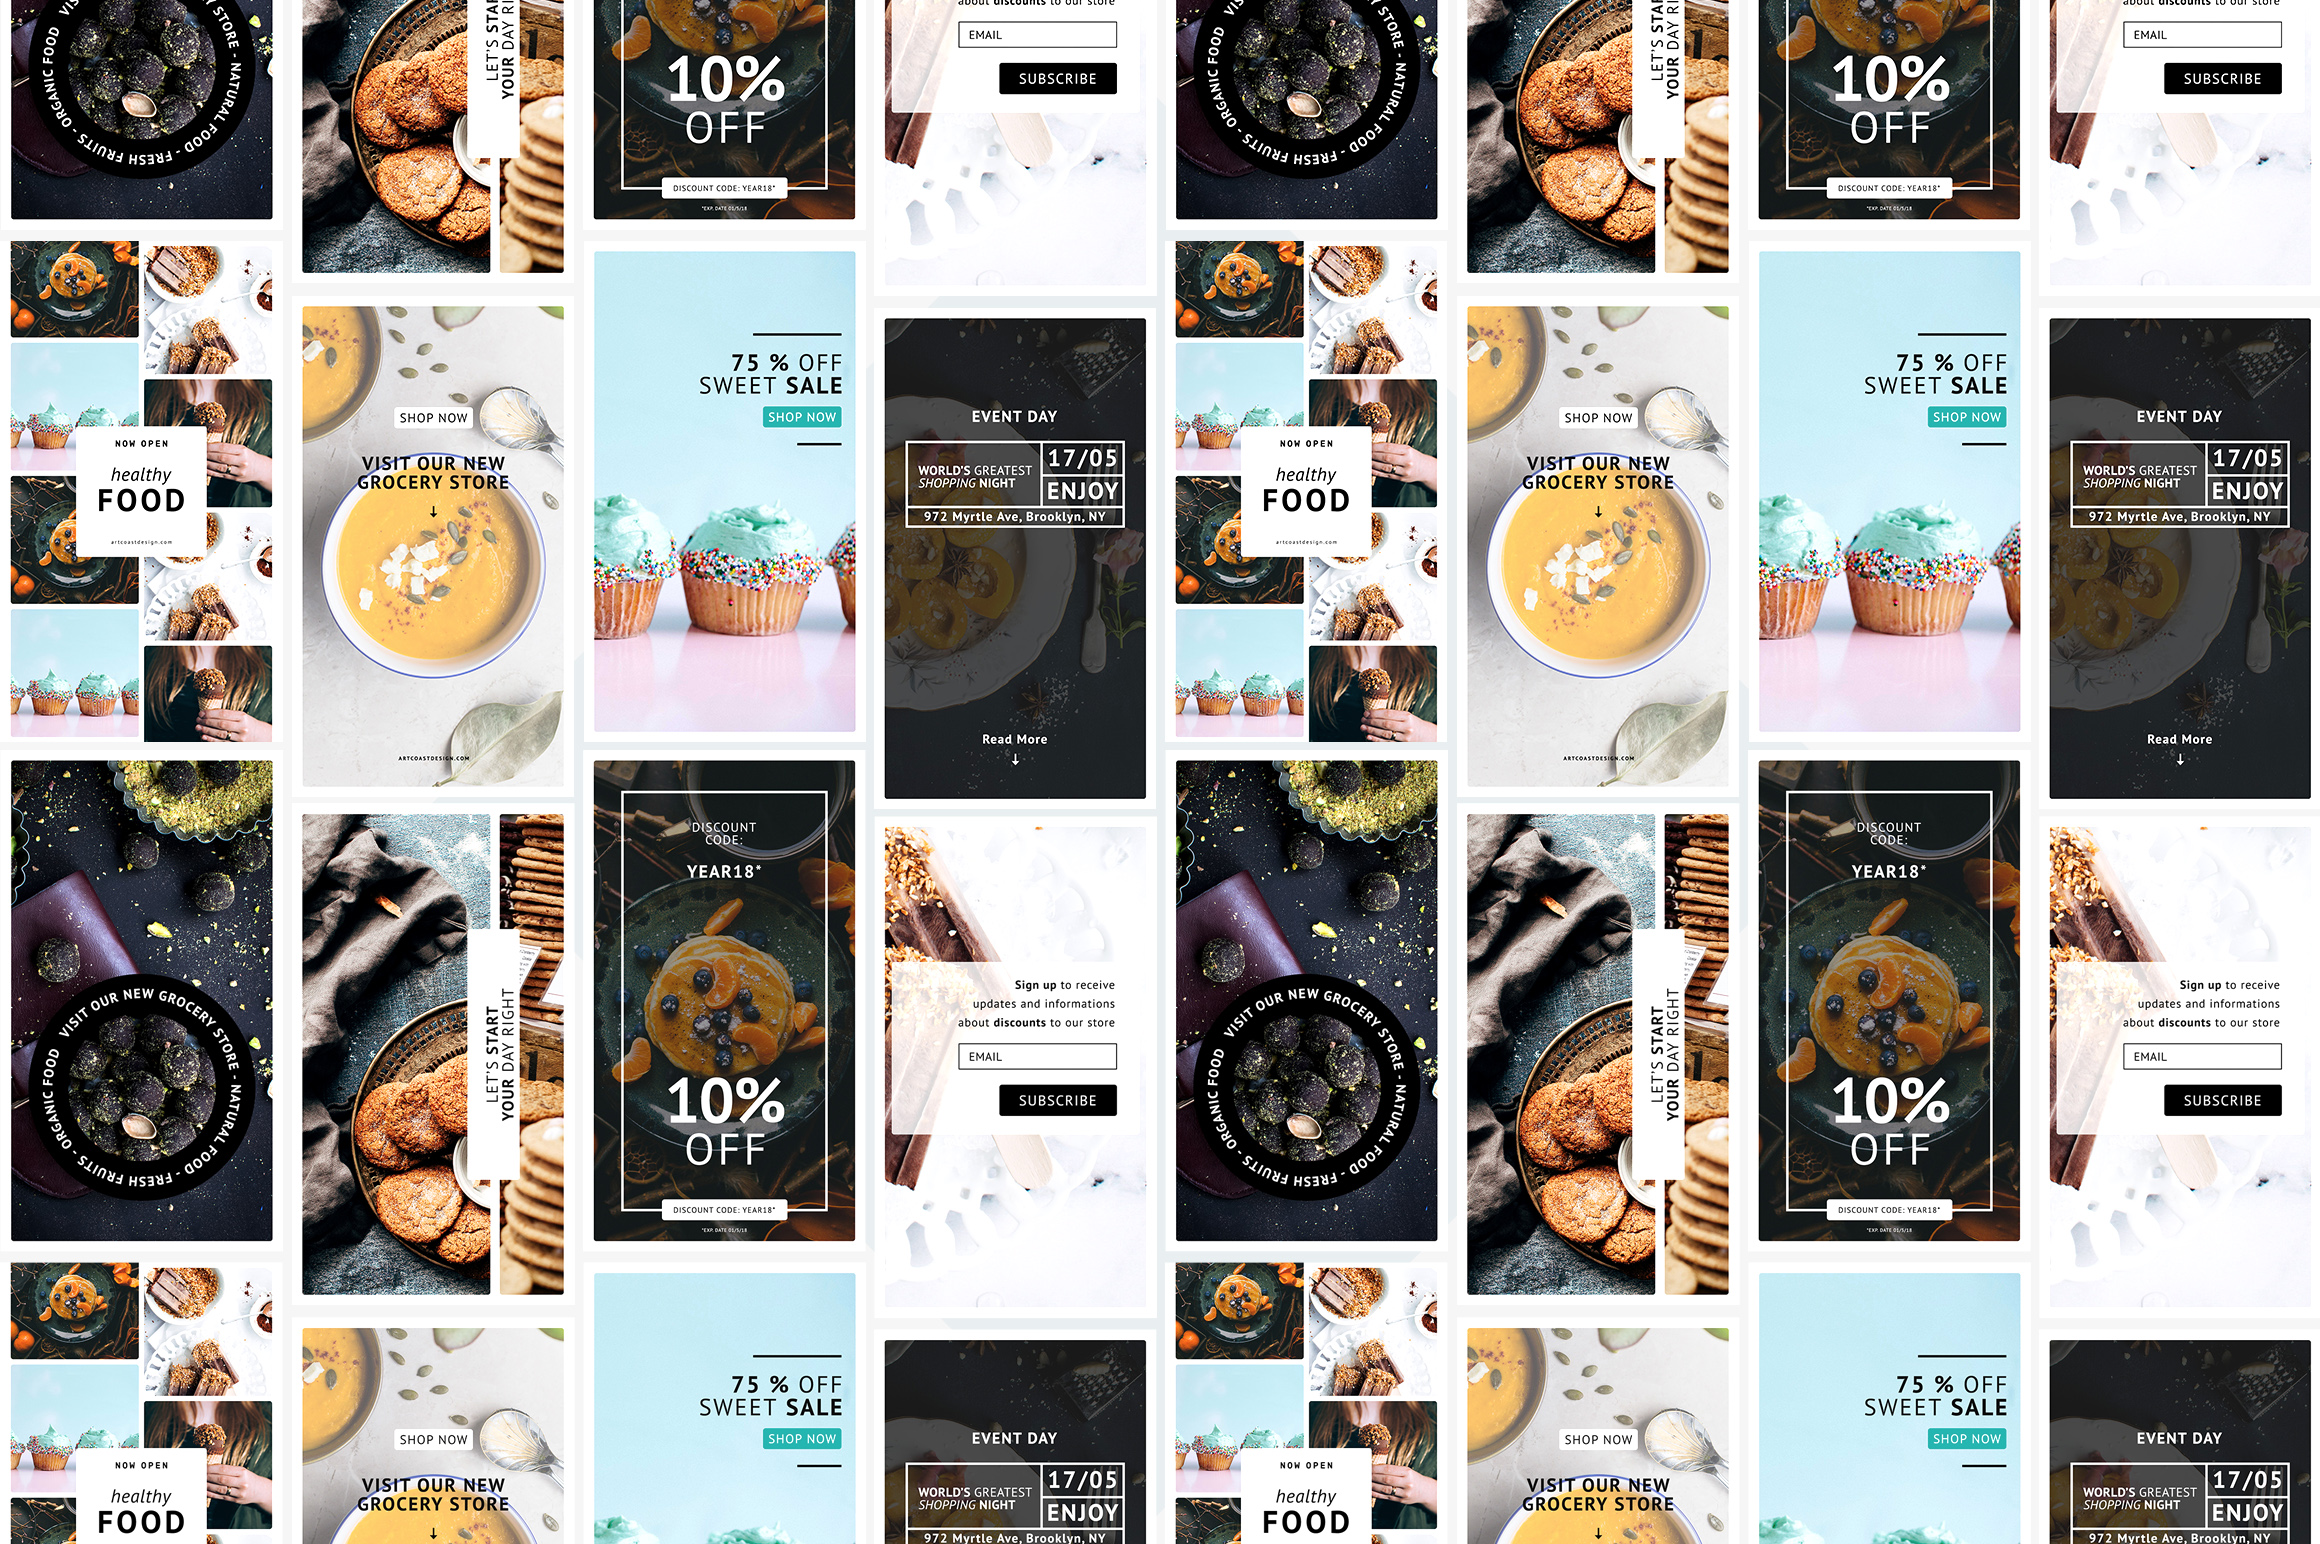 24 Instagram Templates Graphic Graphic Templates By Dmitry Mashkin - Image 3